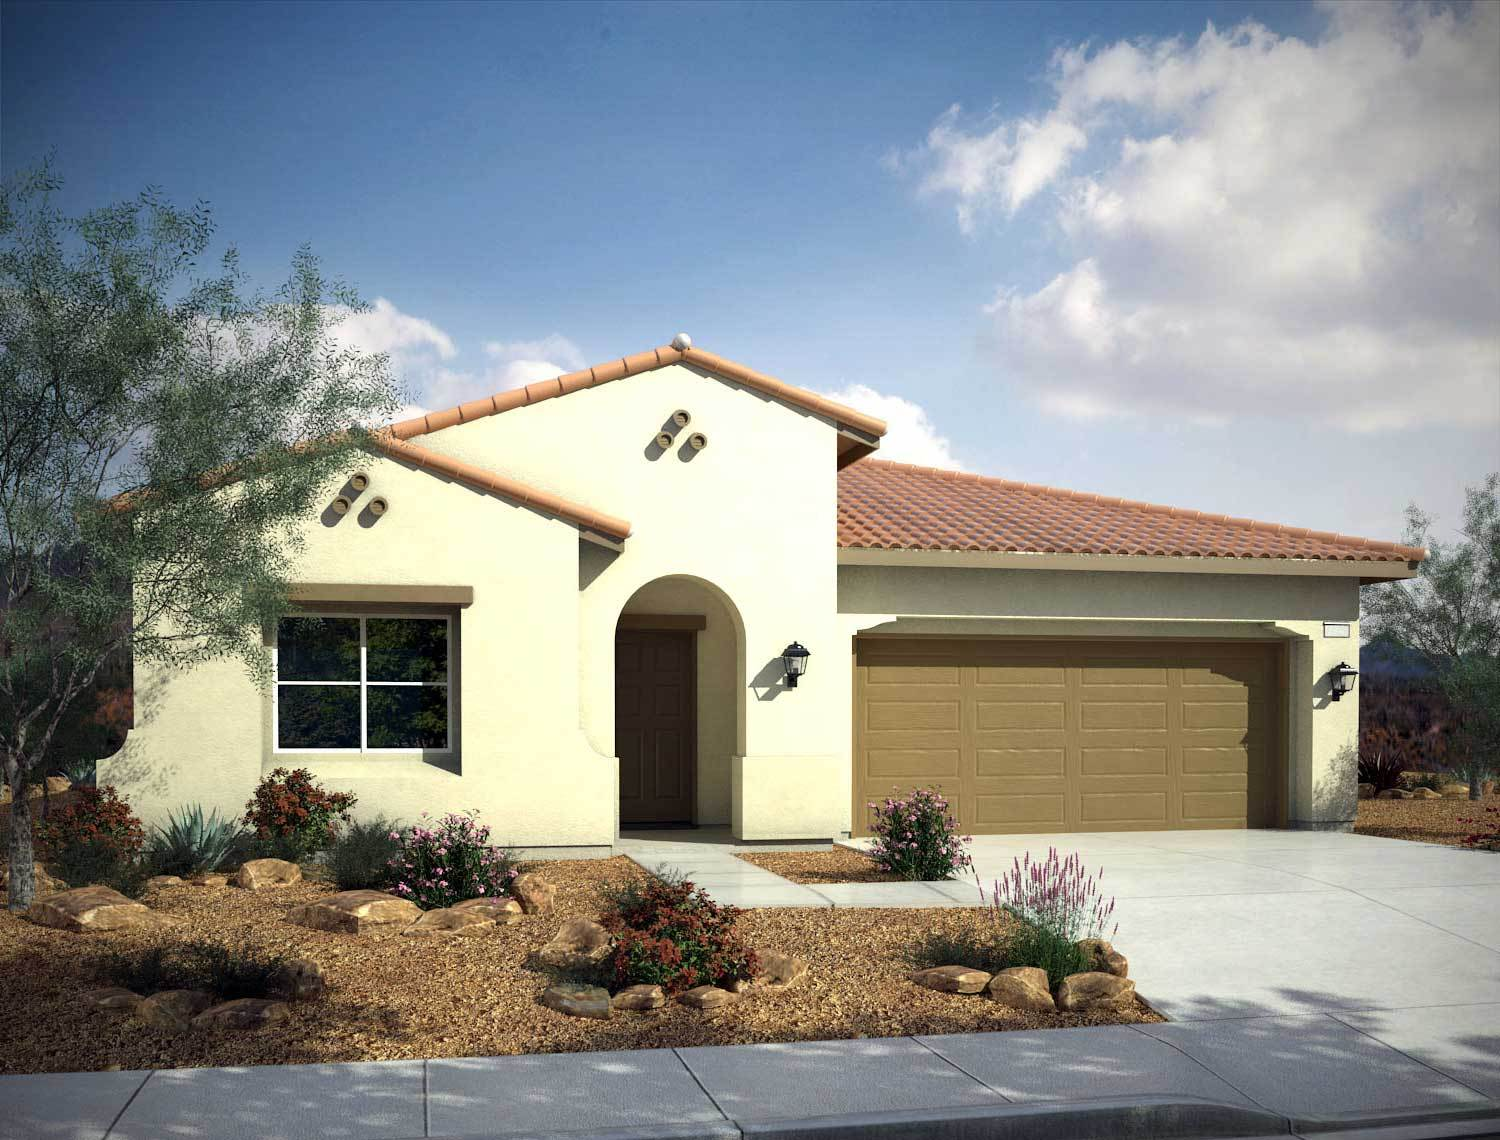 Single Family for Sale at Mountain Falls - Plan 4 - Series I - Tramonto 5413 East Volterra Pahrump, Nevada 89061 United States